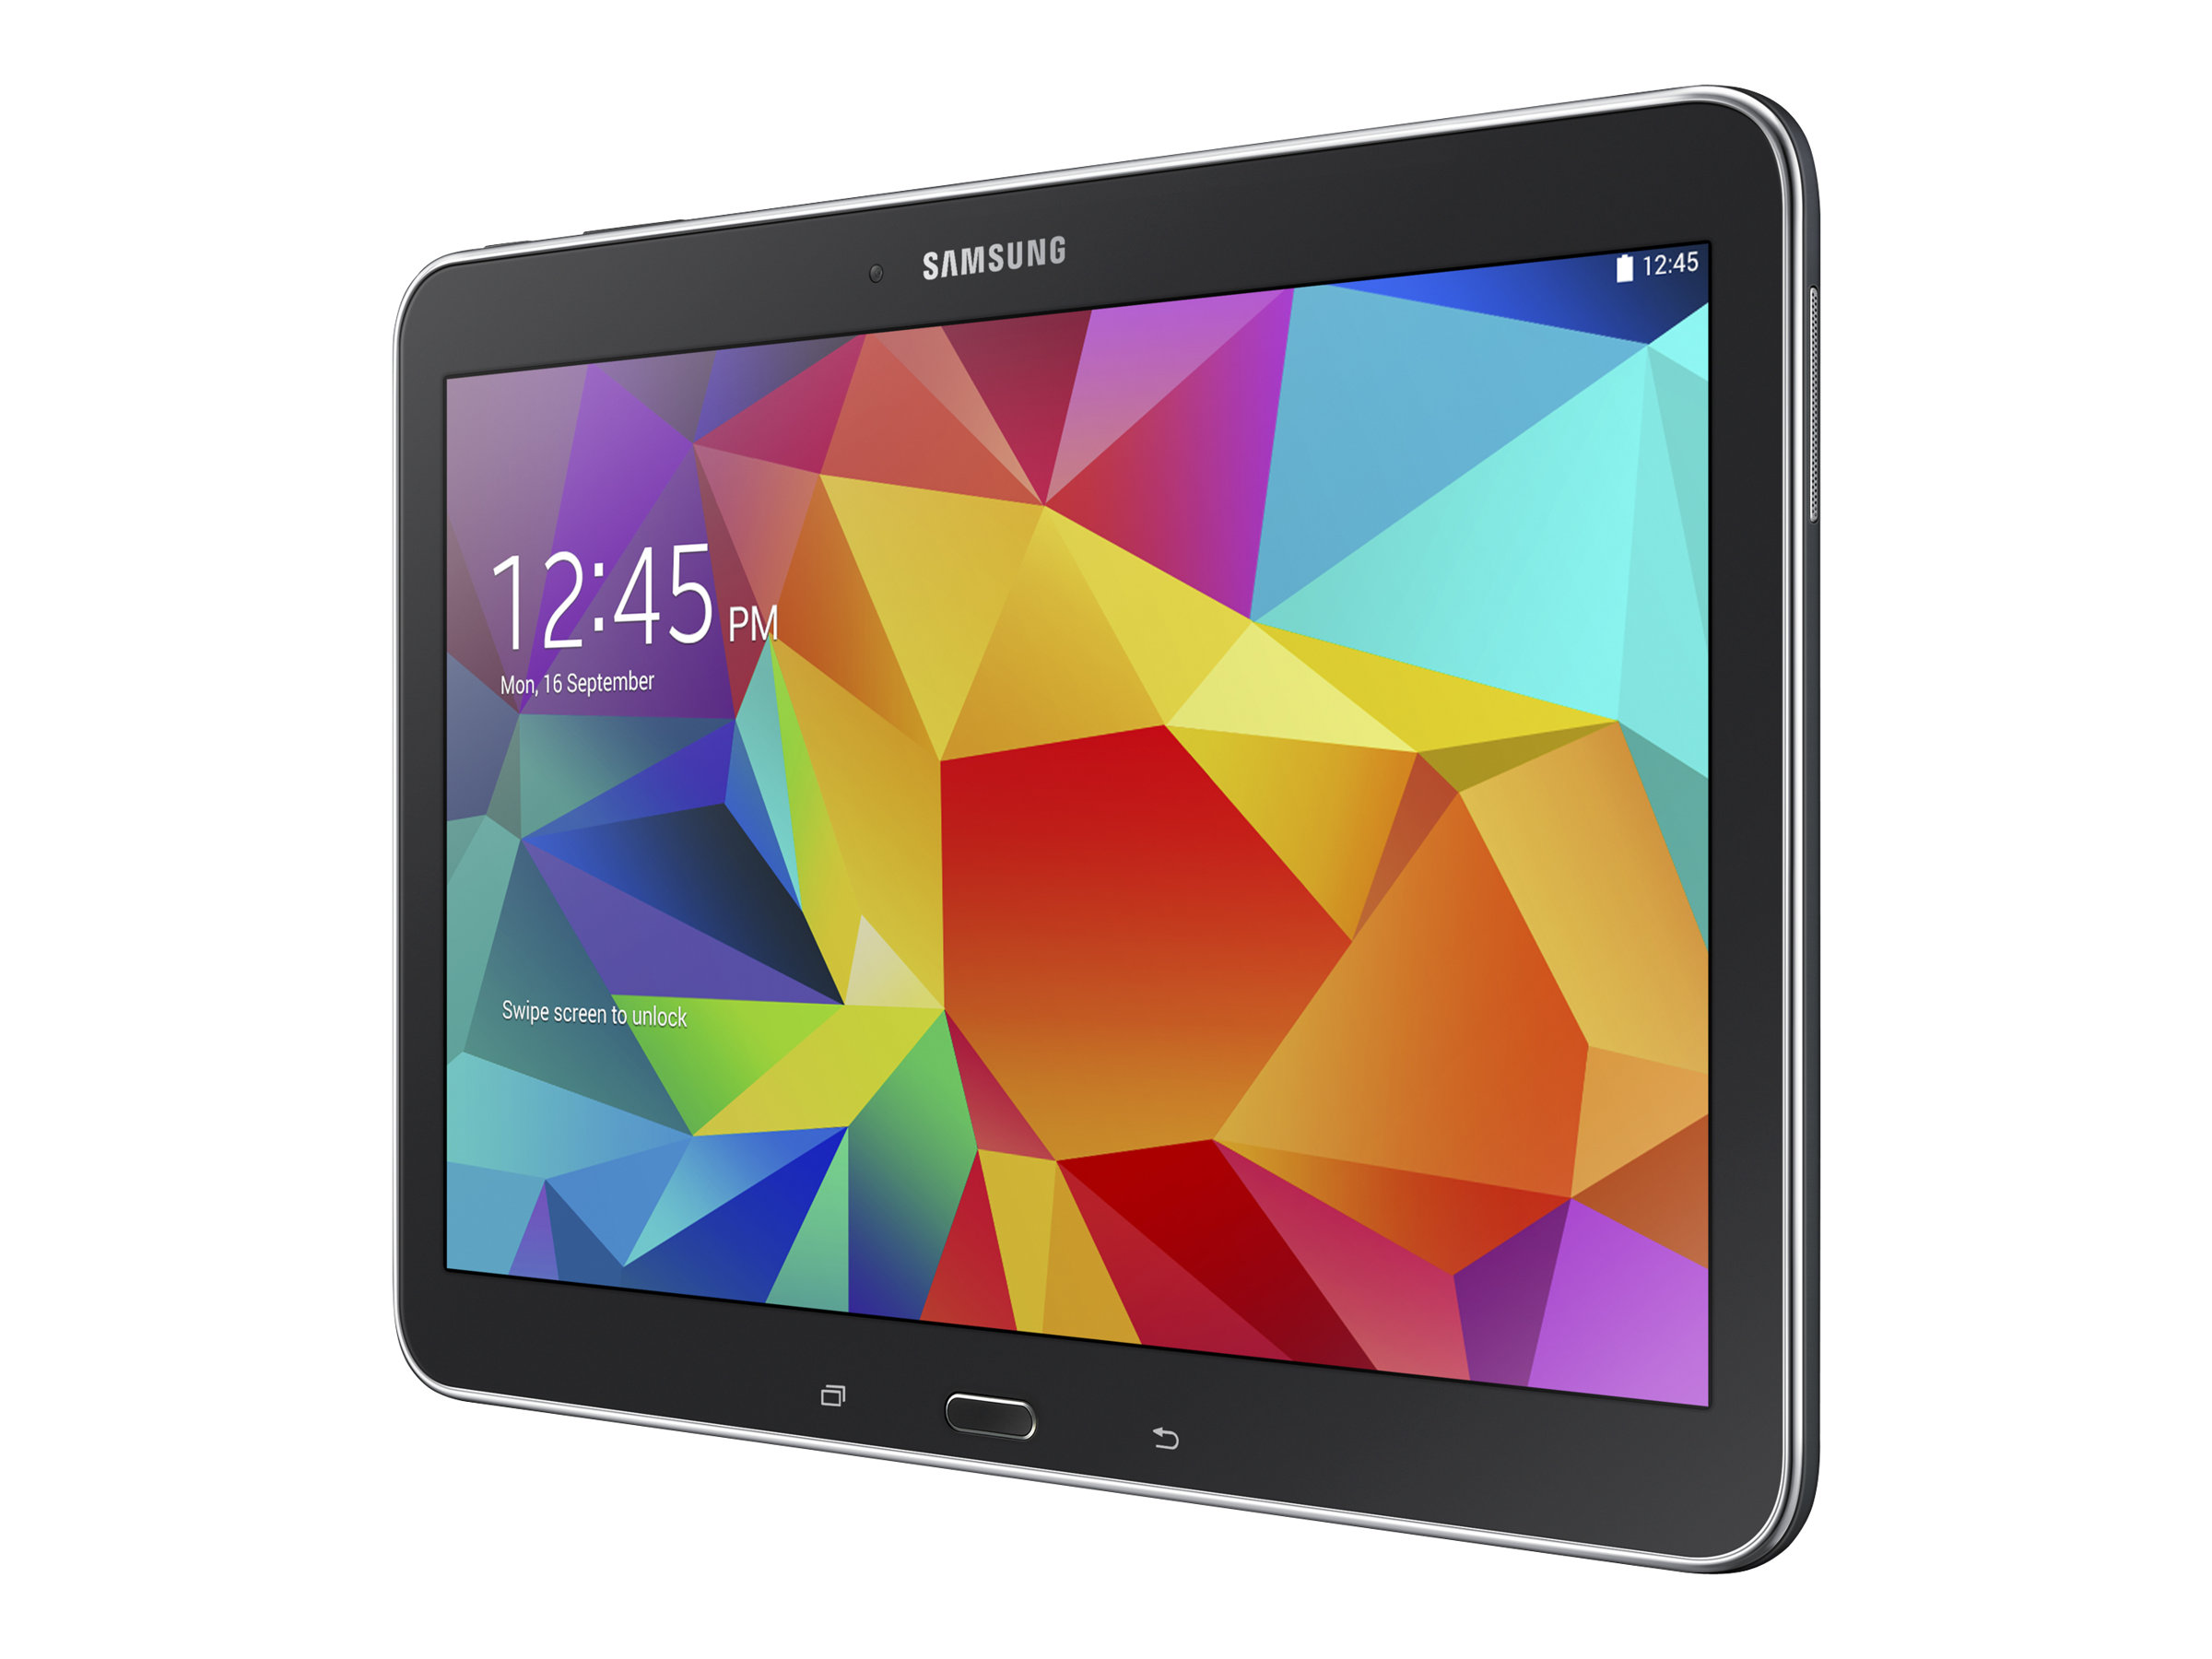 "Samsung Galaxy Tab 4 10.1"" Tablet with 16GB and Android 4.4 - Black"